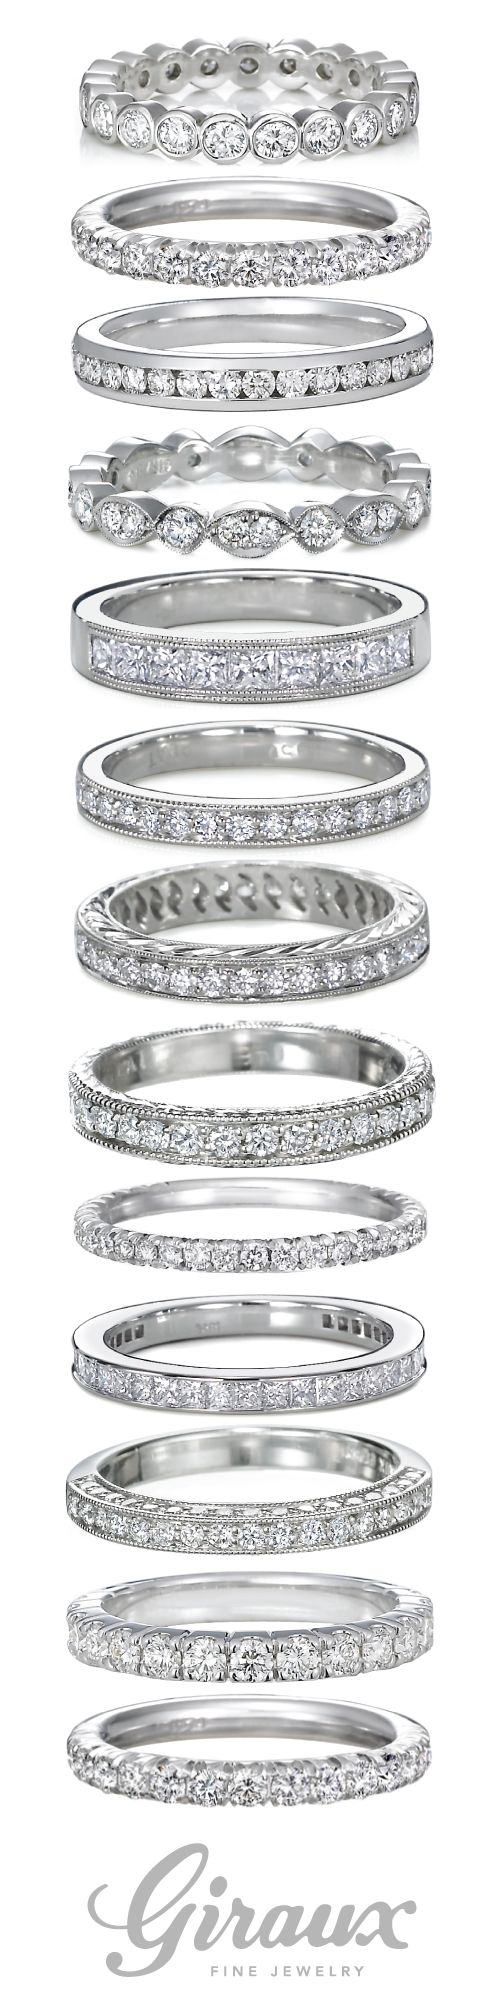 wedding bridal ring view bands sets for round set bling silver your all anniversary rings engagement vintage stone cz jewelry sterling